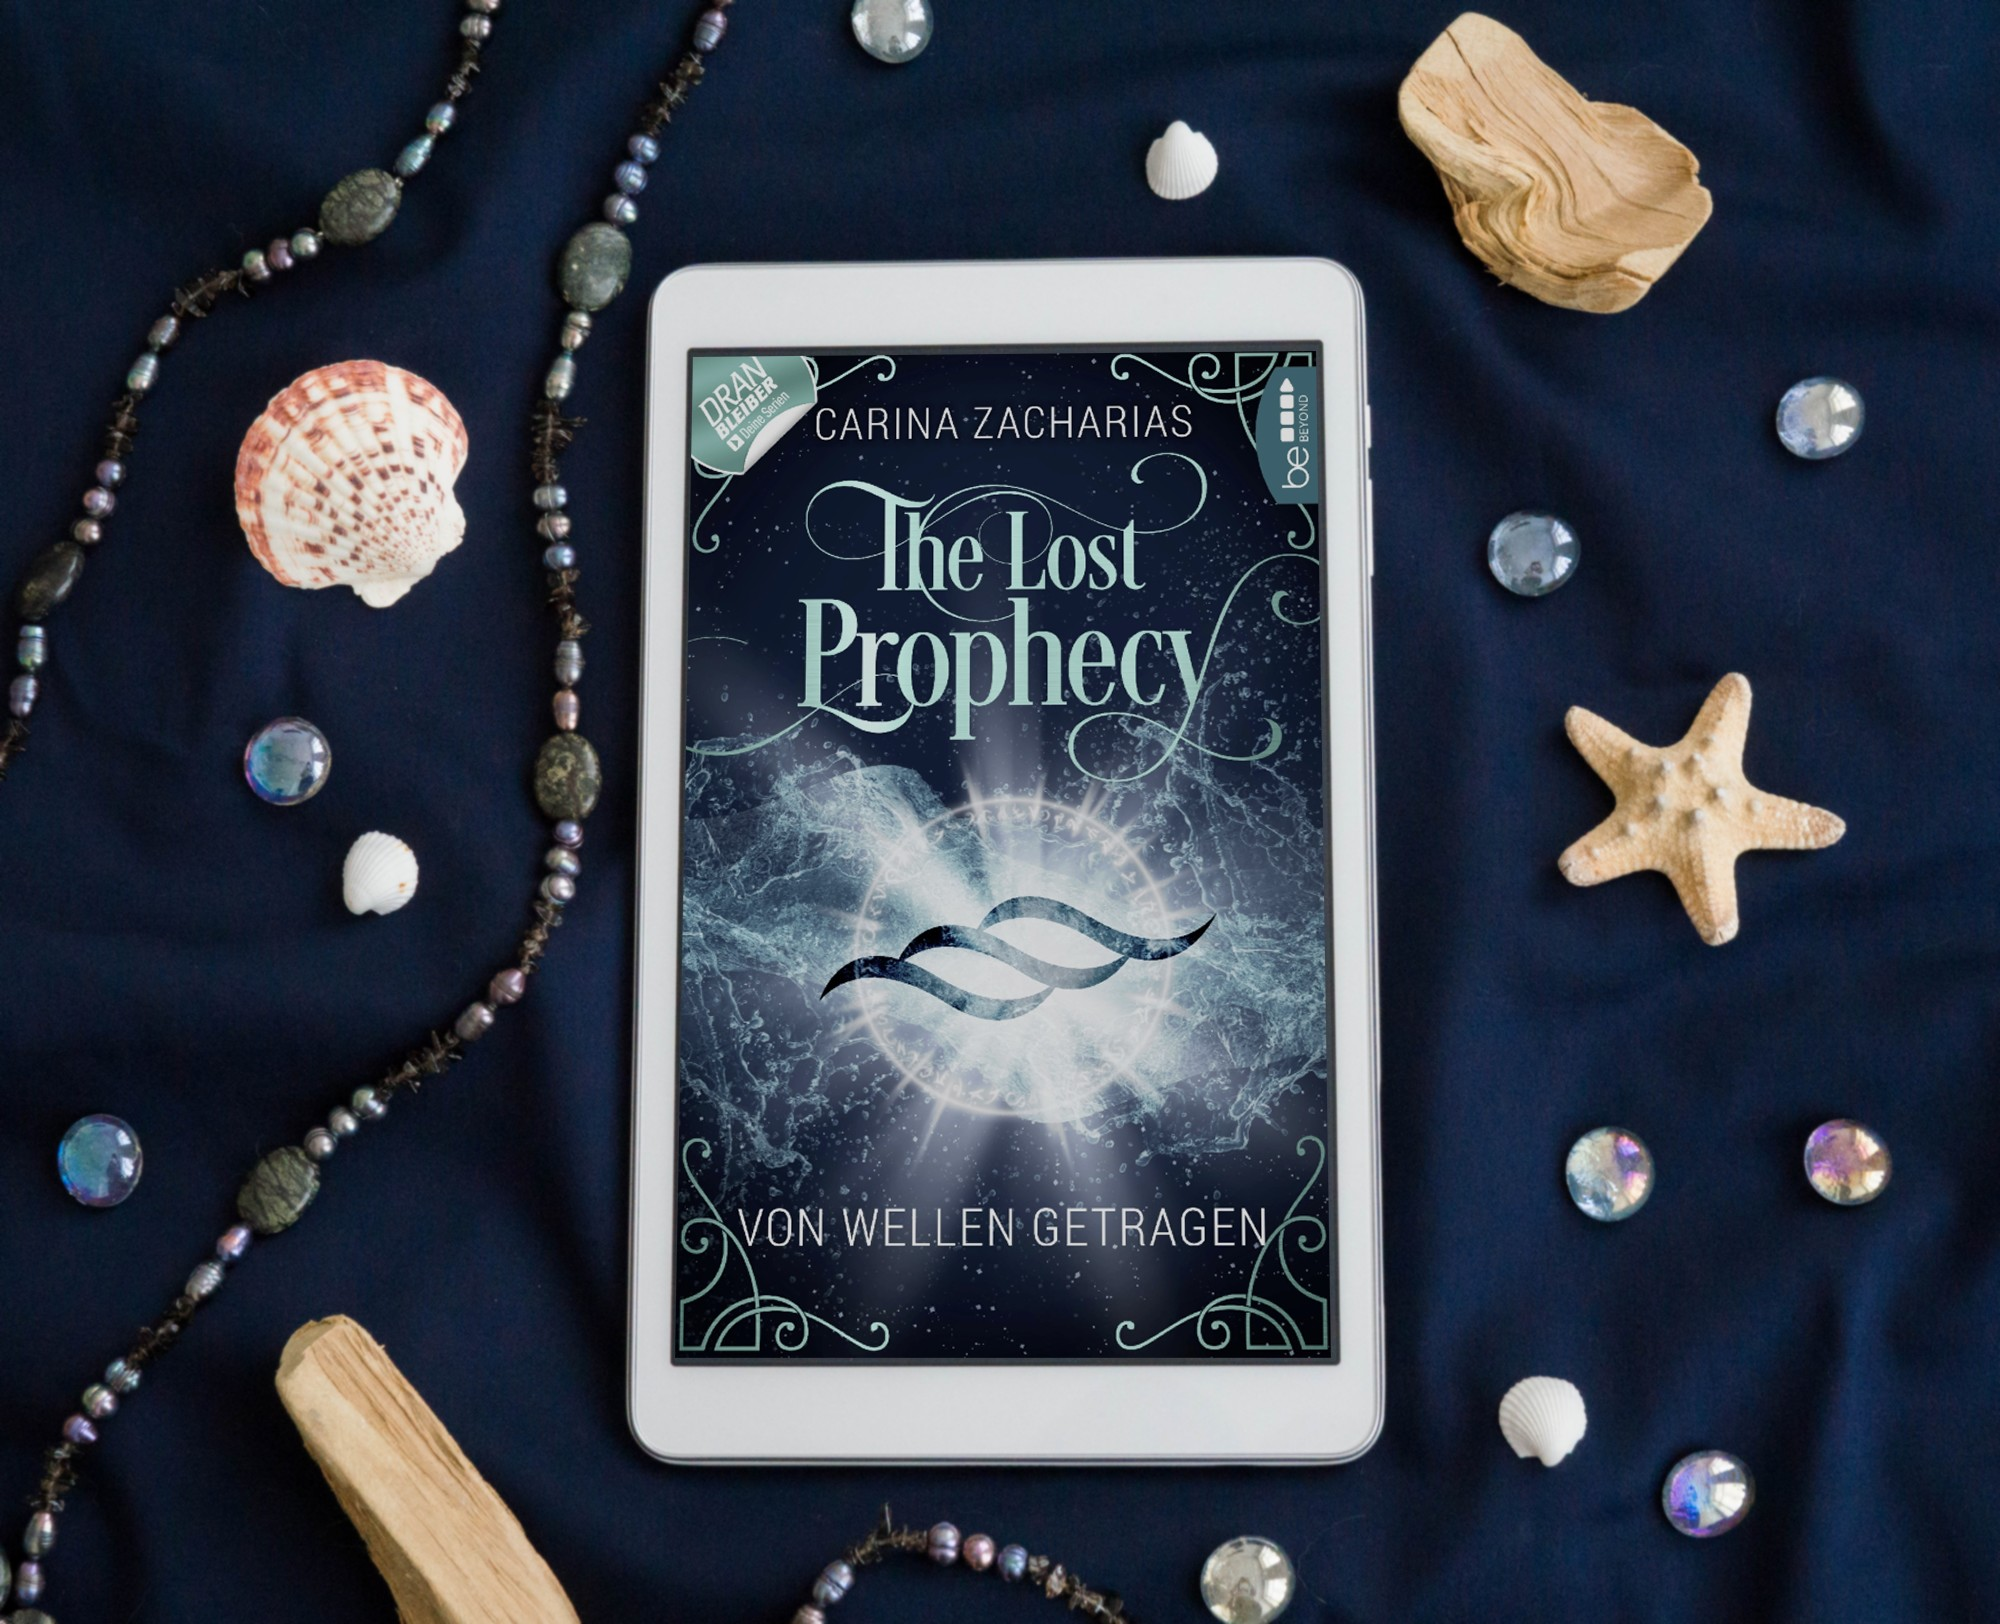 The Lost Prophecy: Von Wellen getragen – Carina Zacharias